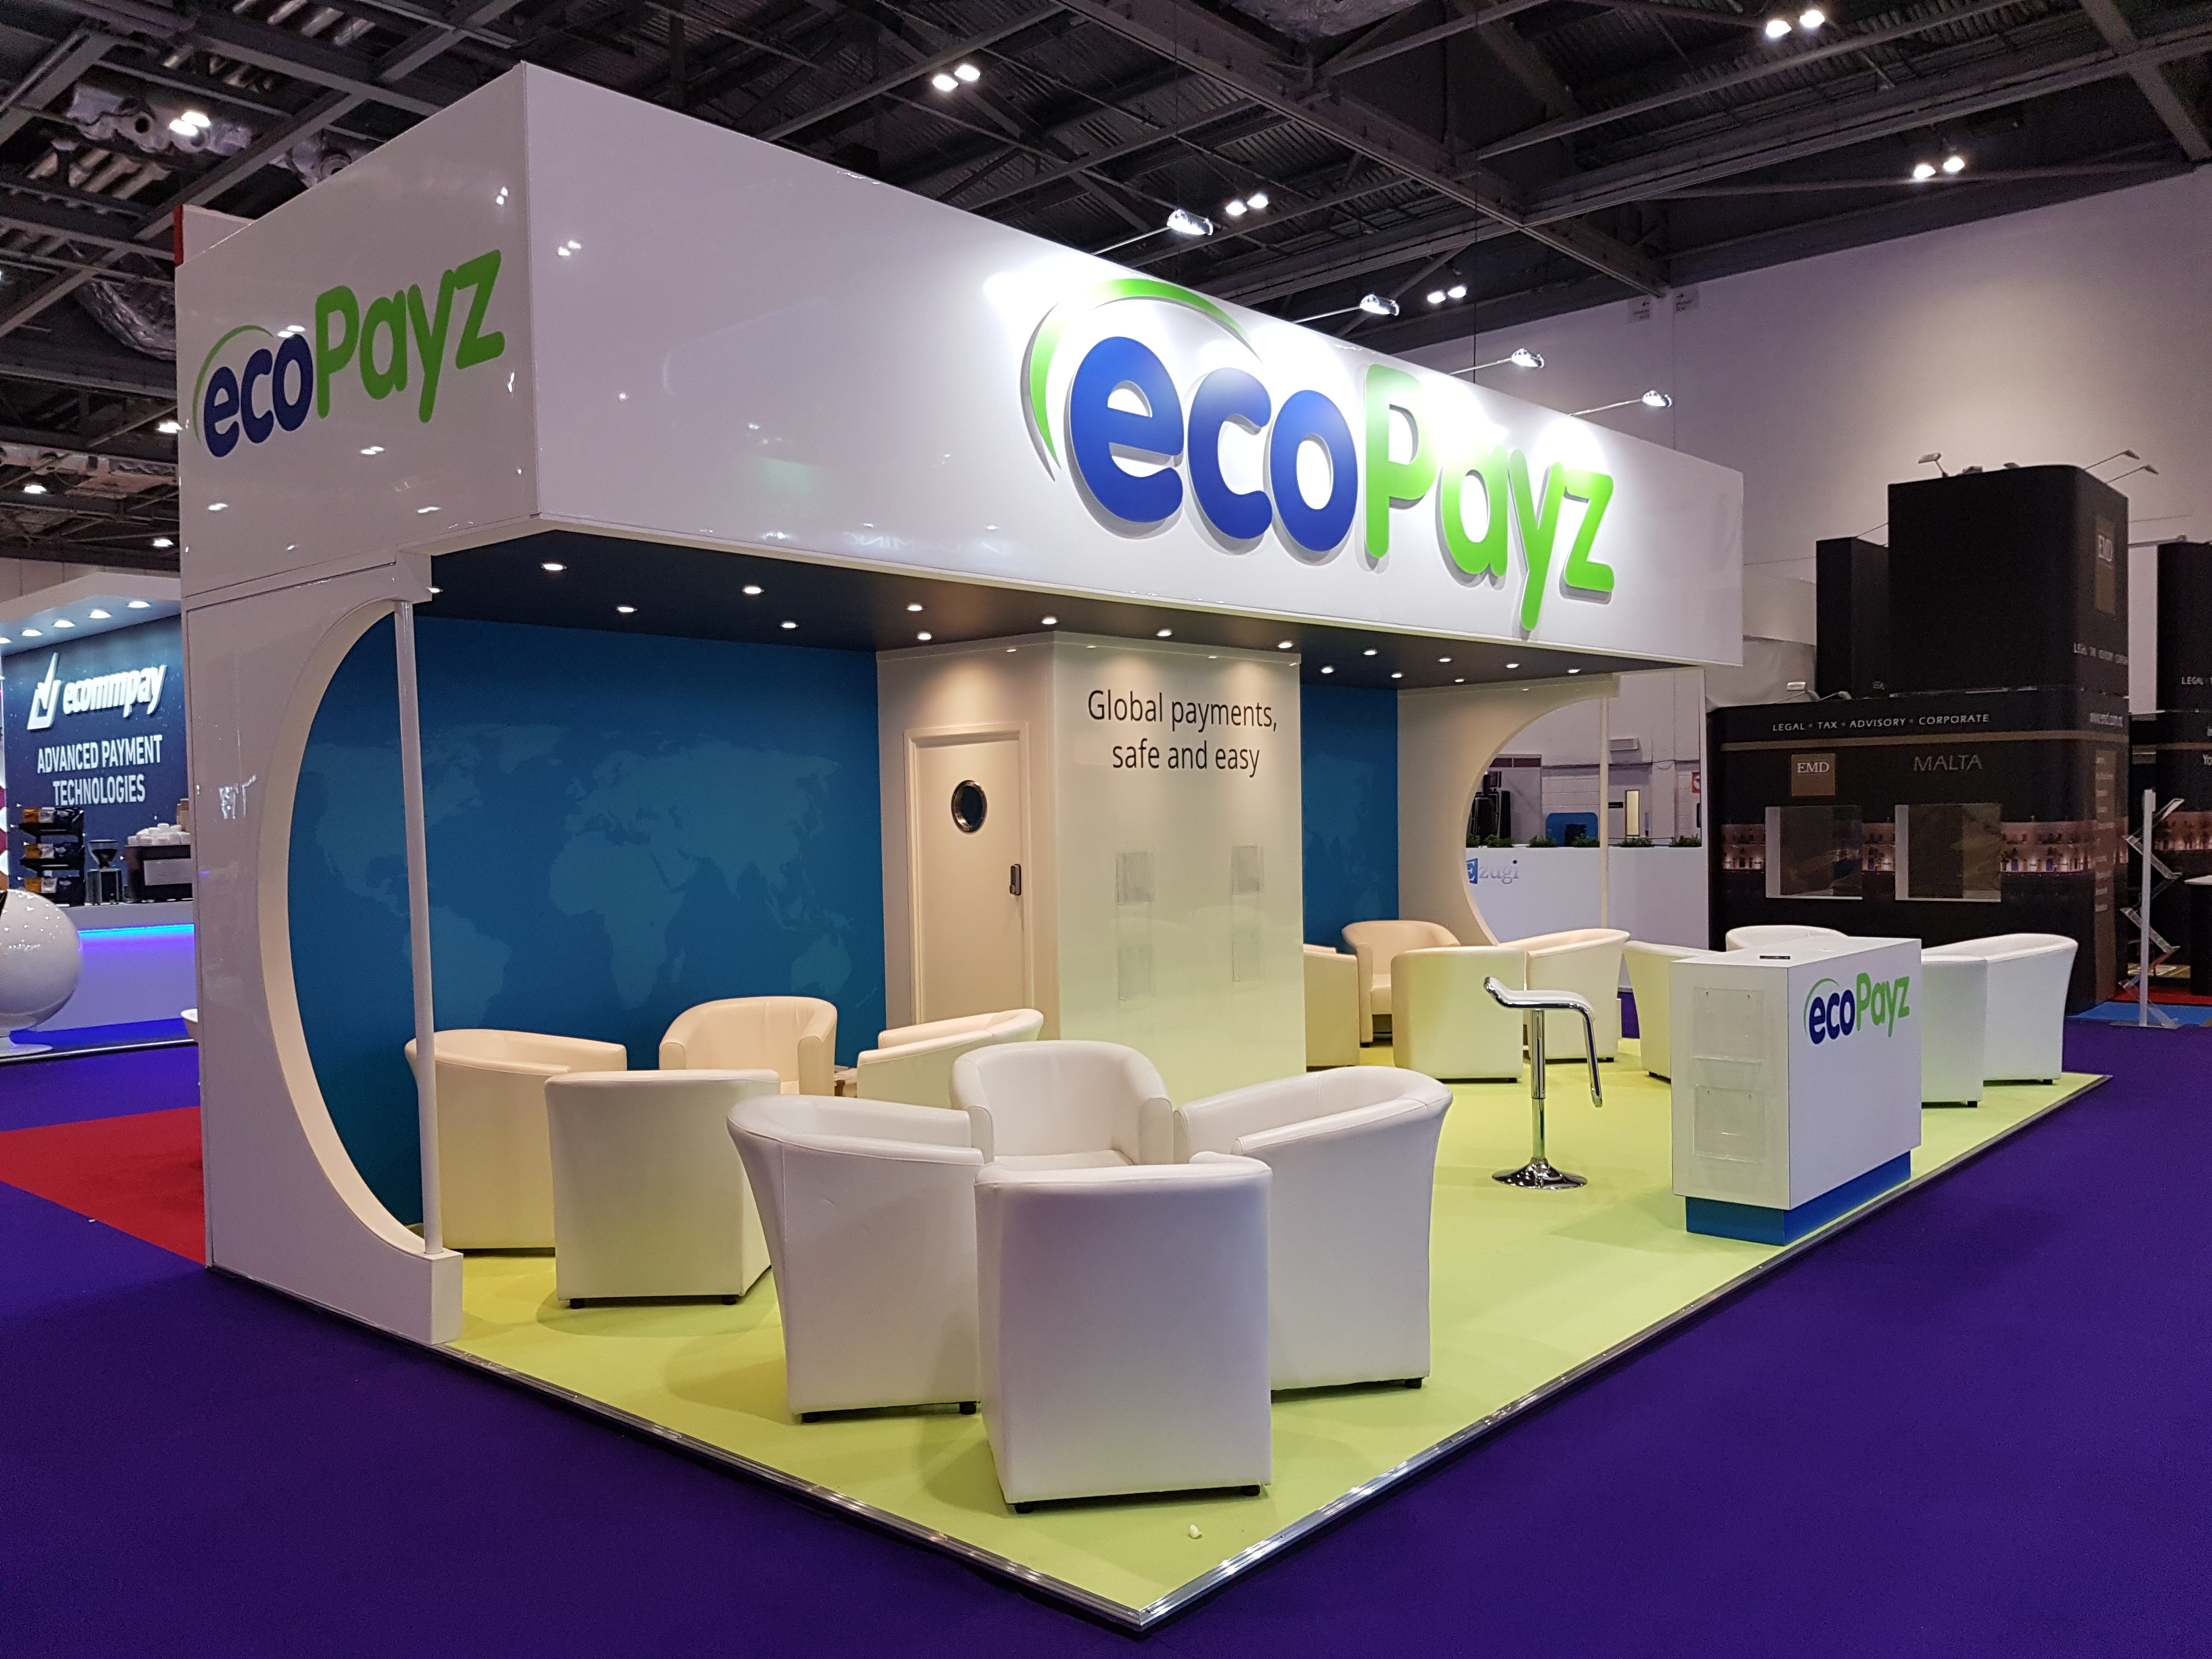 Exhibition Stand Fitter Jobs London : Ecopayz ice london expose designs exhibition stands